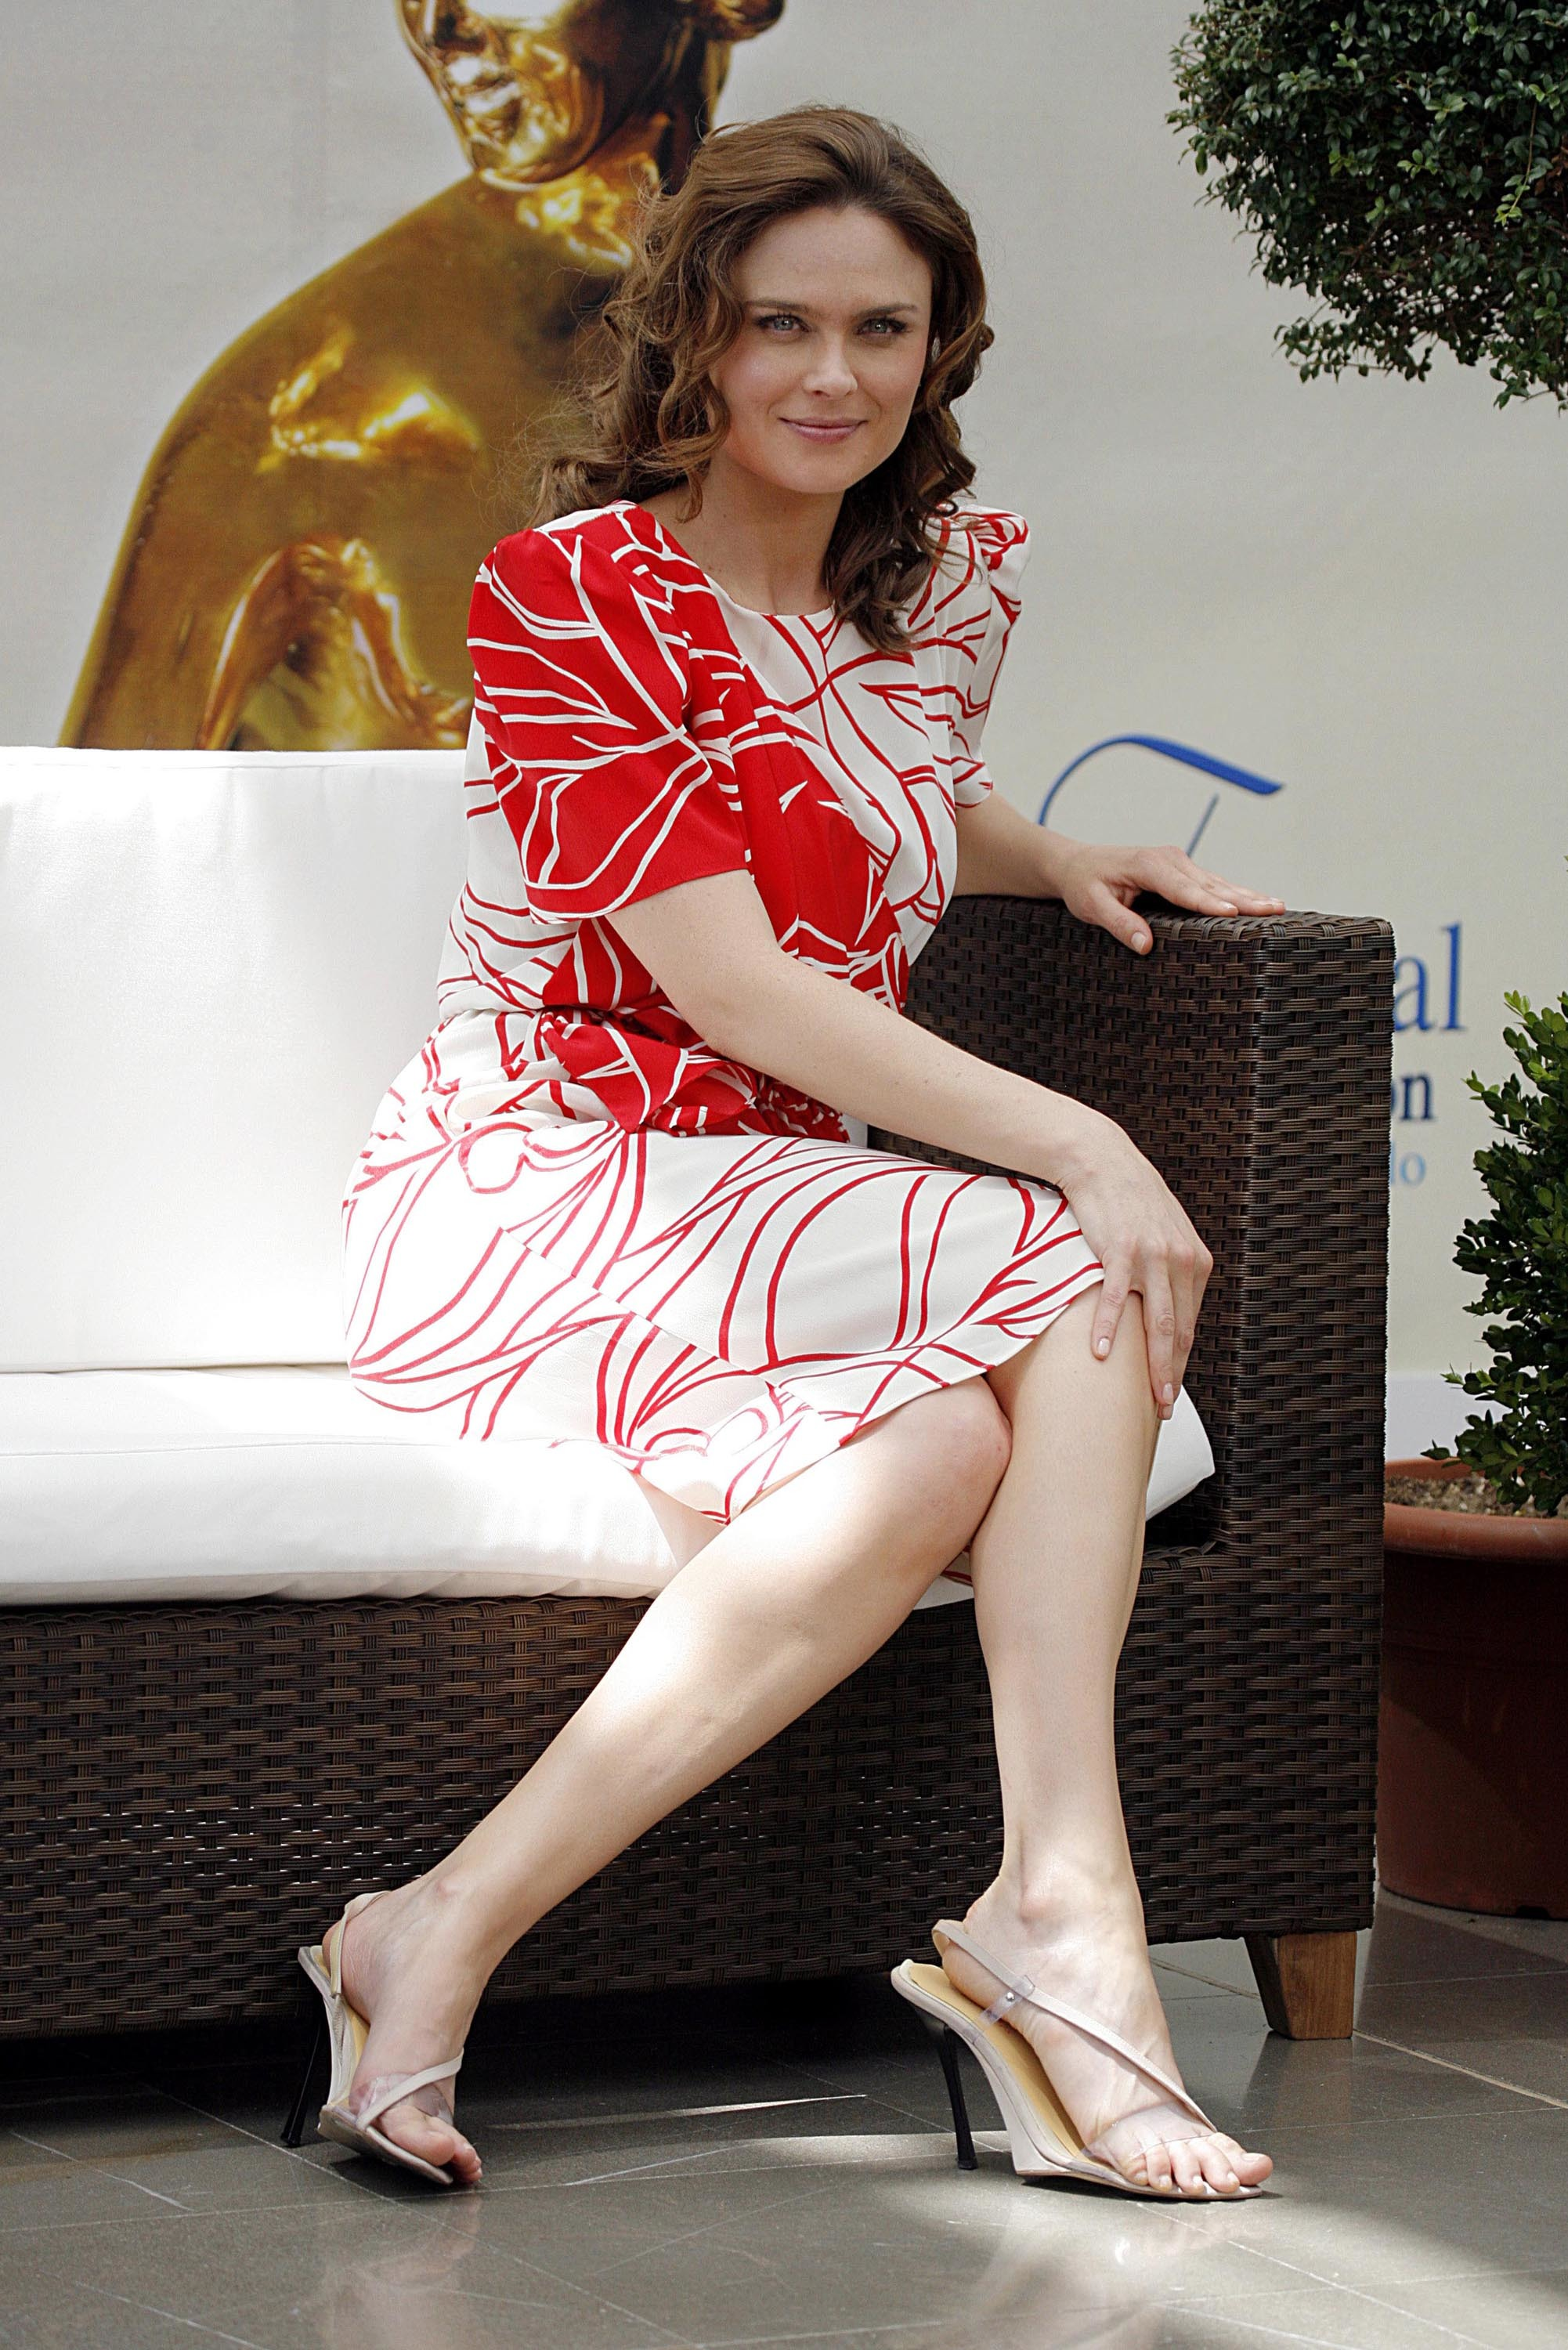 Discussion Emily deschanel feet and legs